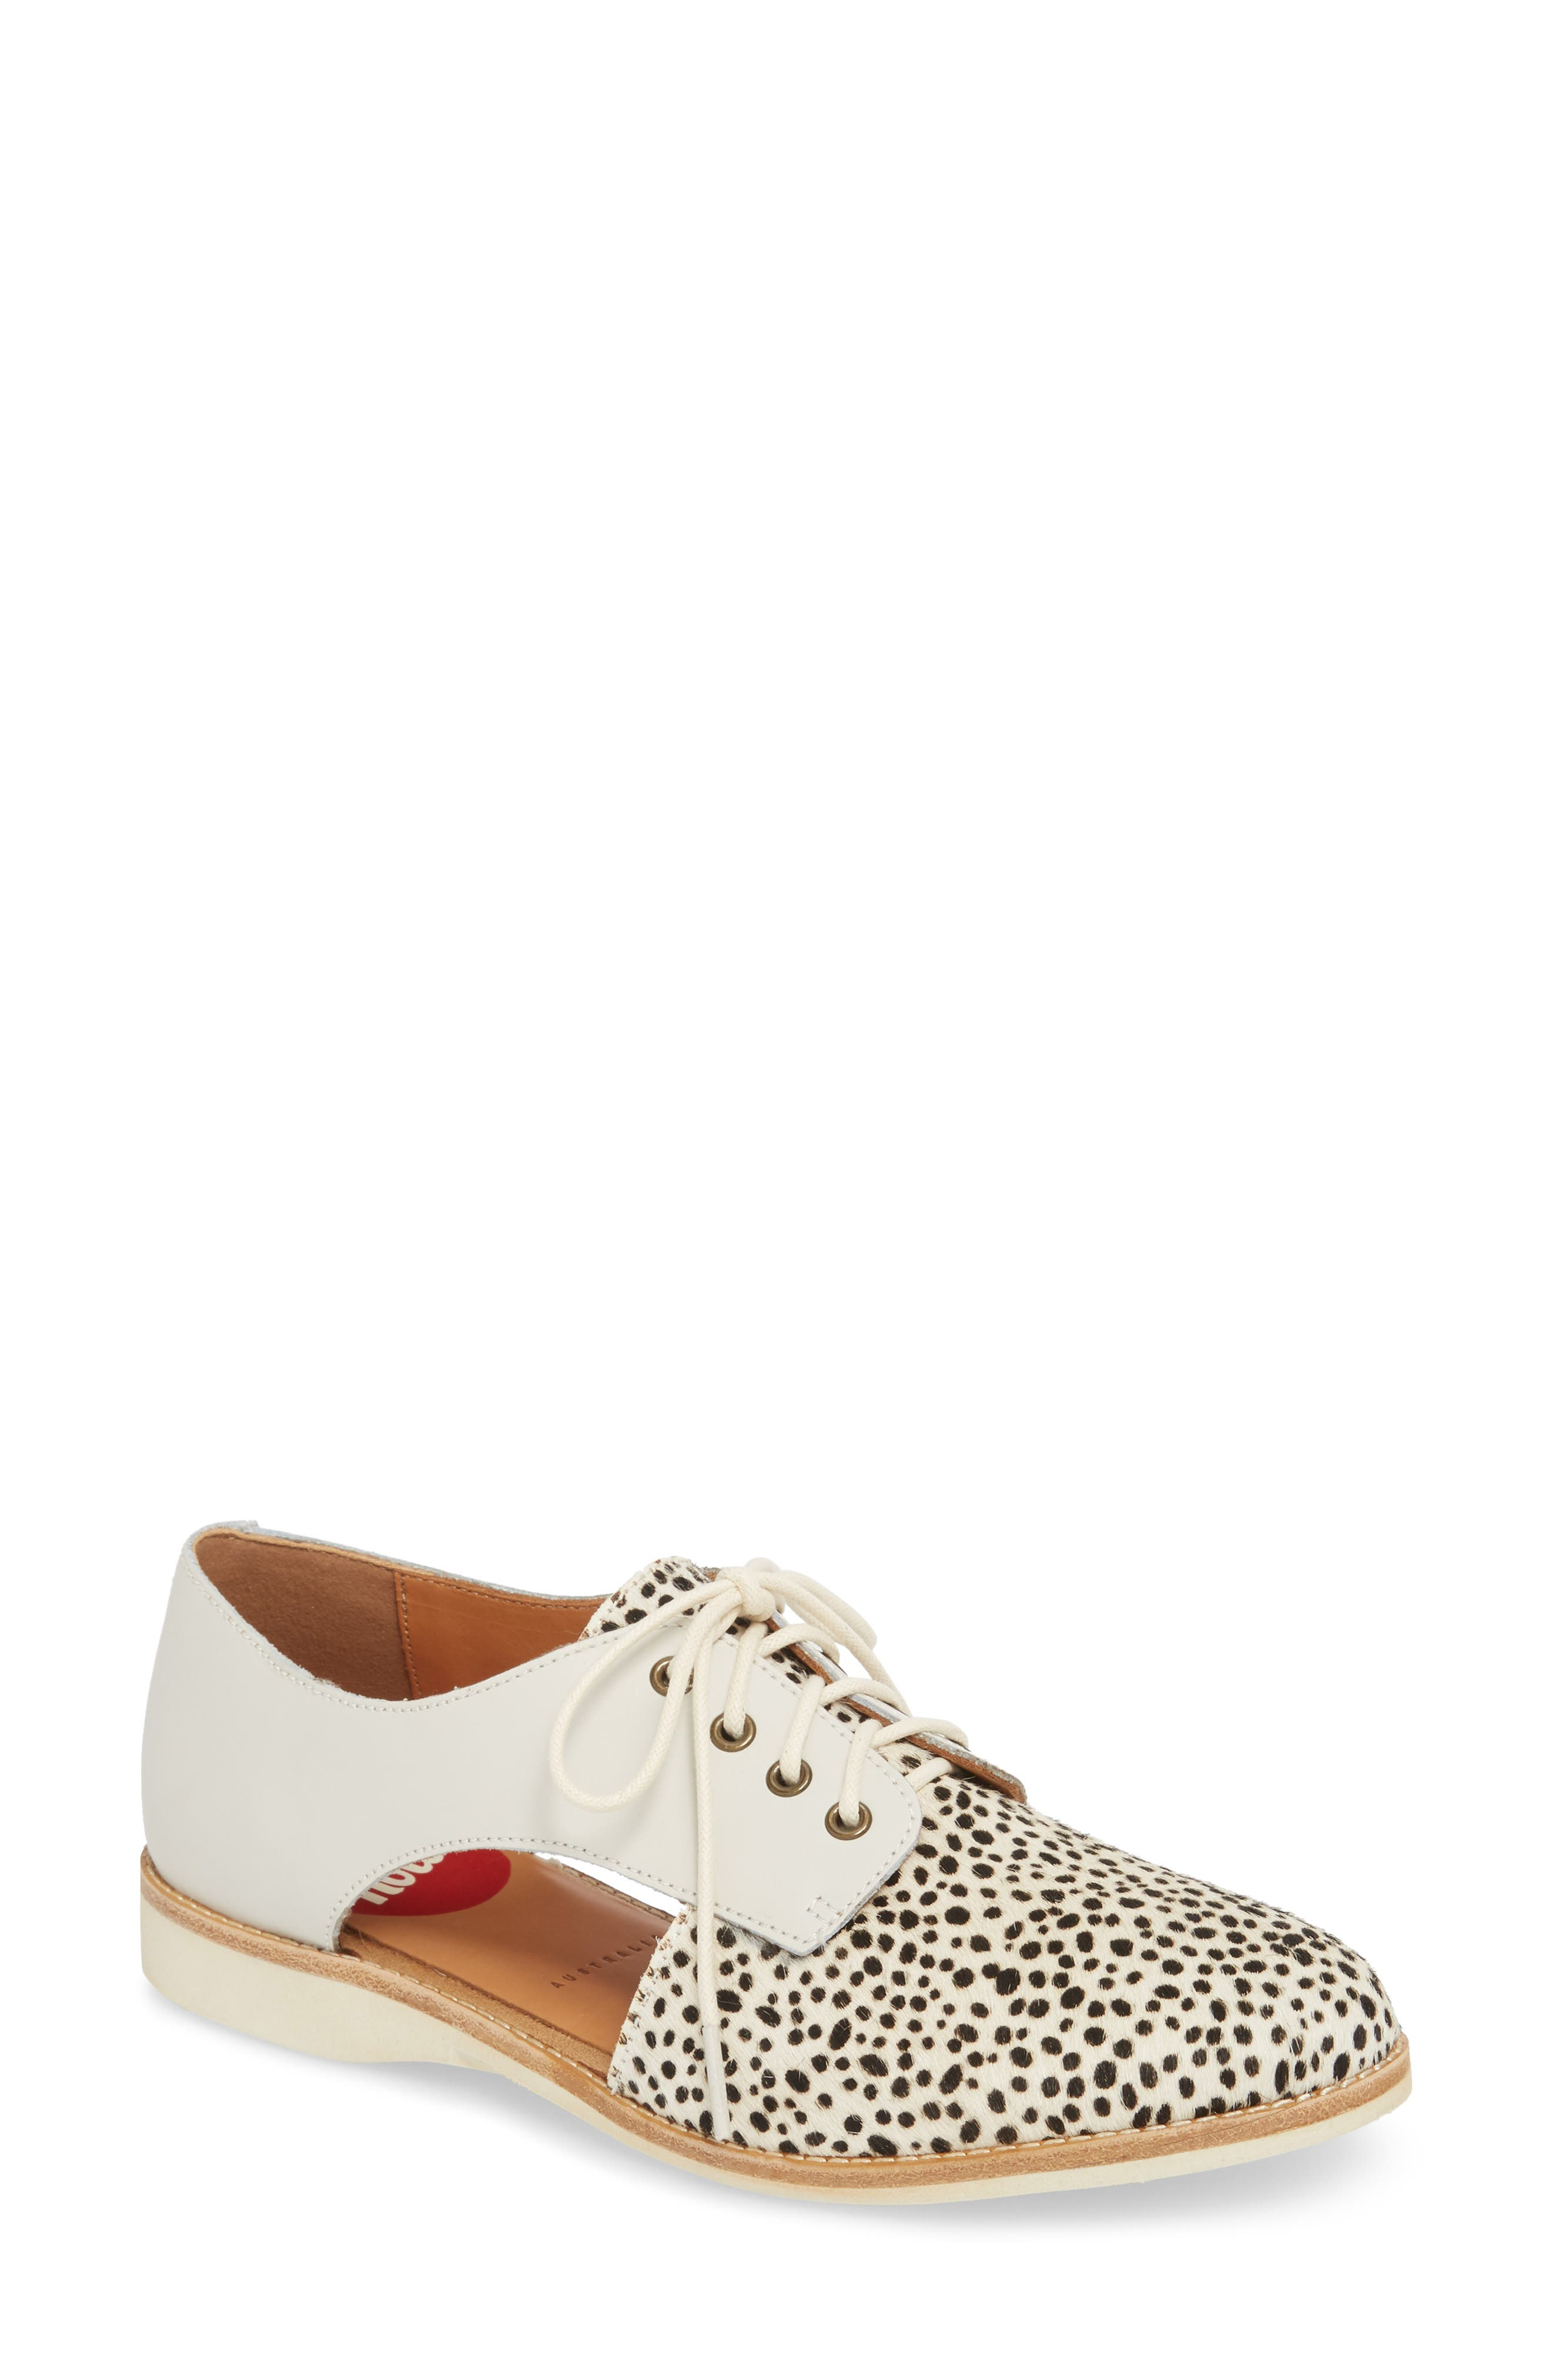 ROLLIE Side Cut Derby, Main, color, SNOW LEOPARD/ WHITE LEATHER